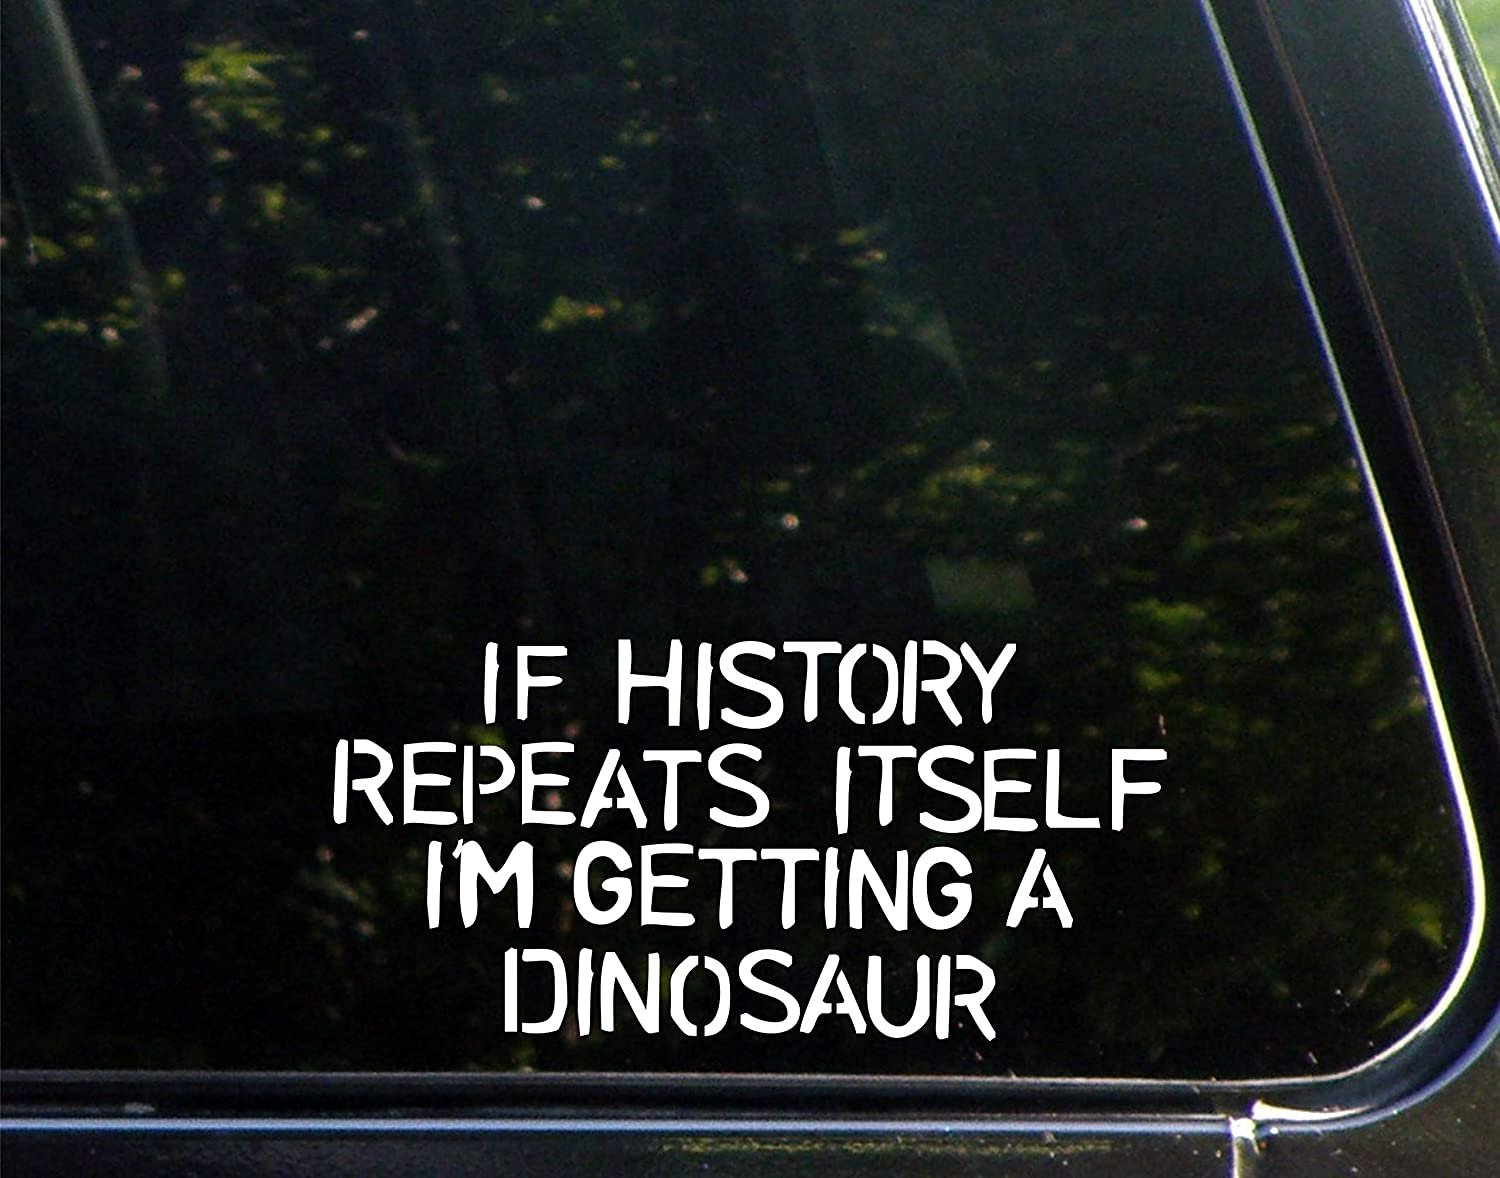 "If History Repeats Itself I'm Getting A Dinosaur - 8"" x 4"" - Vinyl Die Cut Decal/Bumper Sticker for Windows, Cars, Trucks, Laptops, Etc."